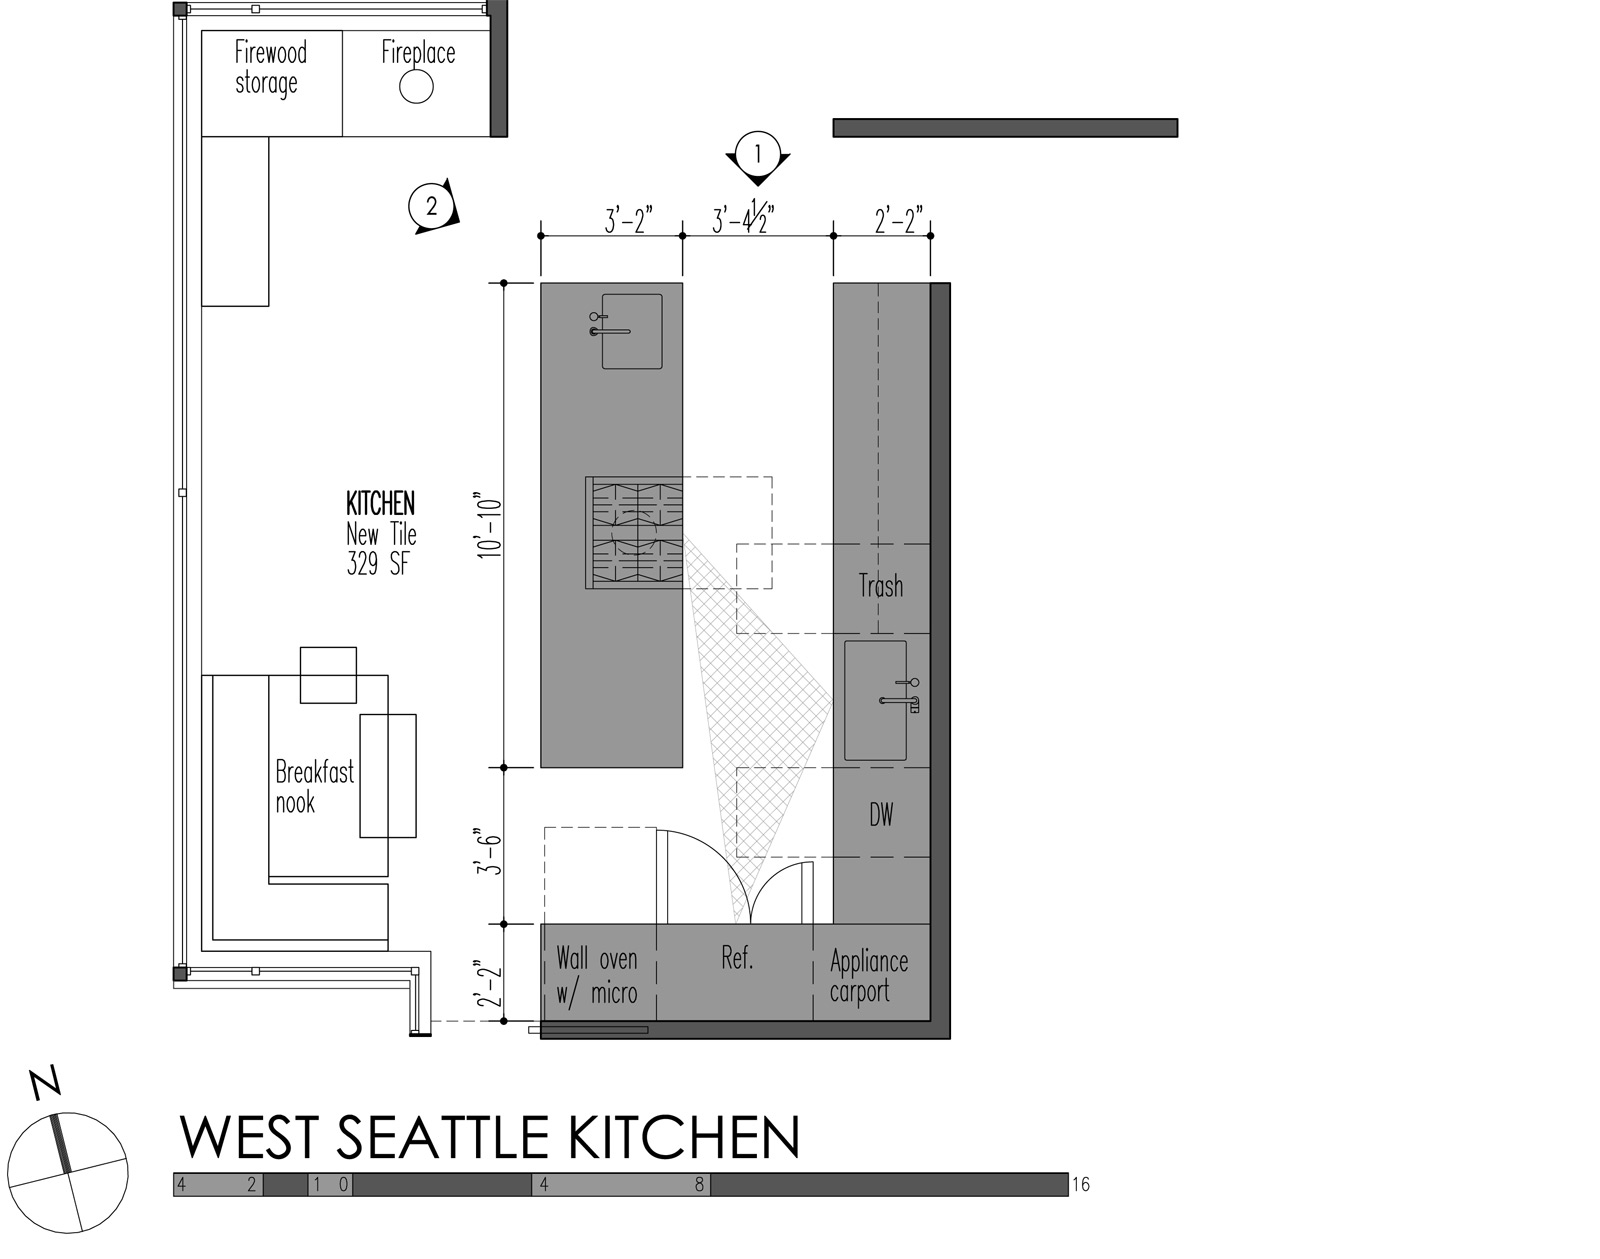 west seattle kitchen plan - Standard Depth Of Kitchen Cabinets